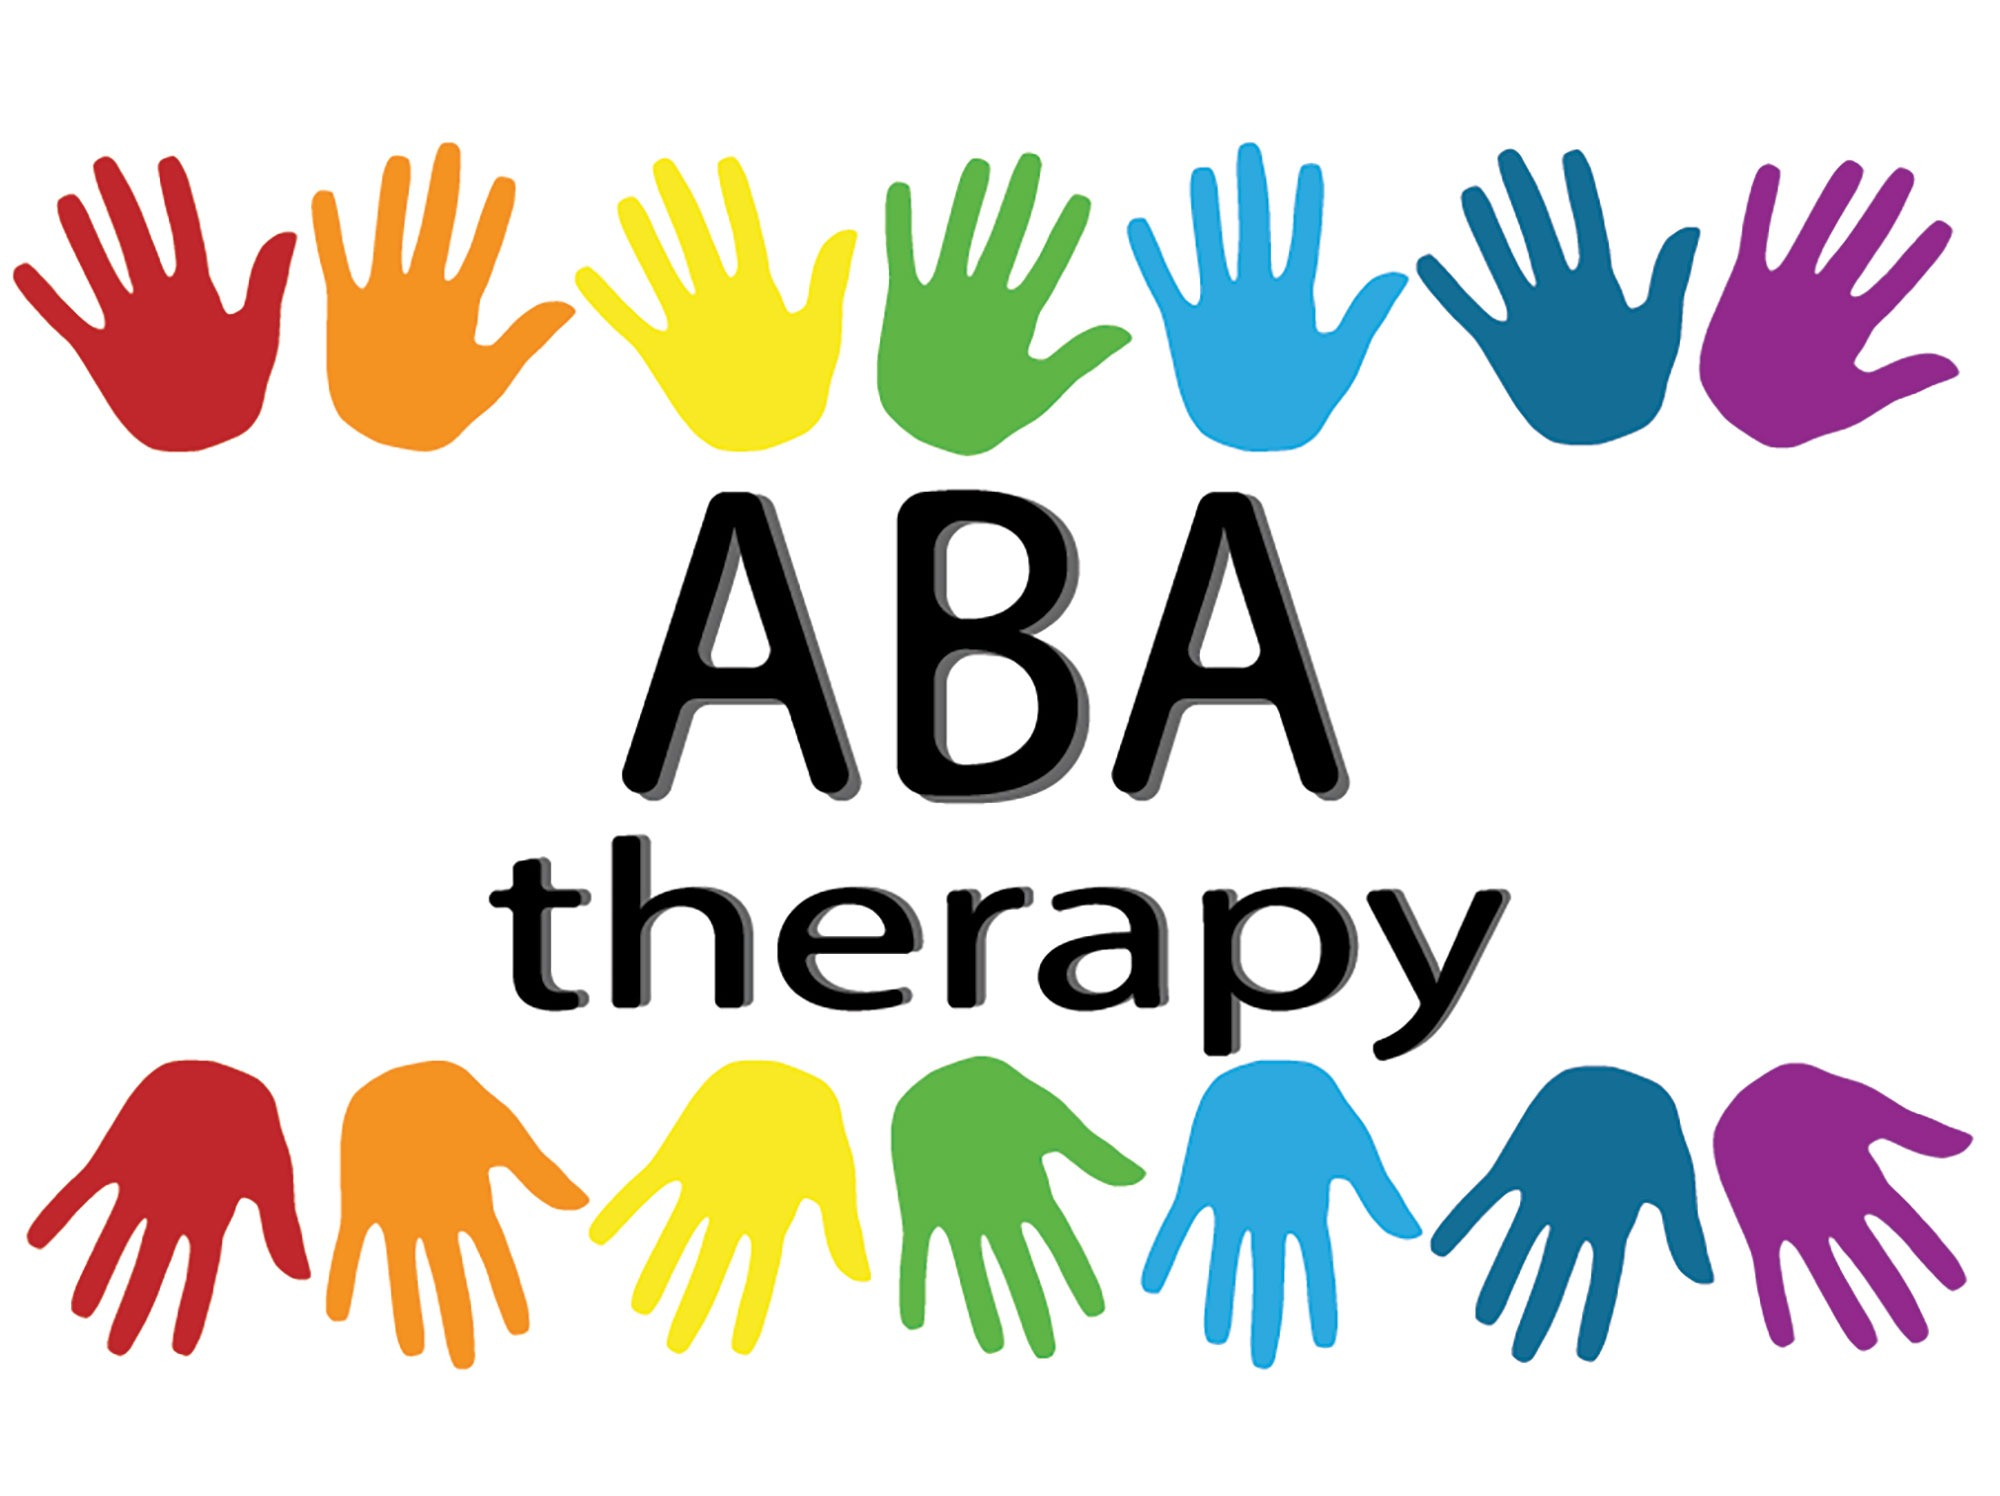 aba-therapy-1612172619.jpg